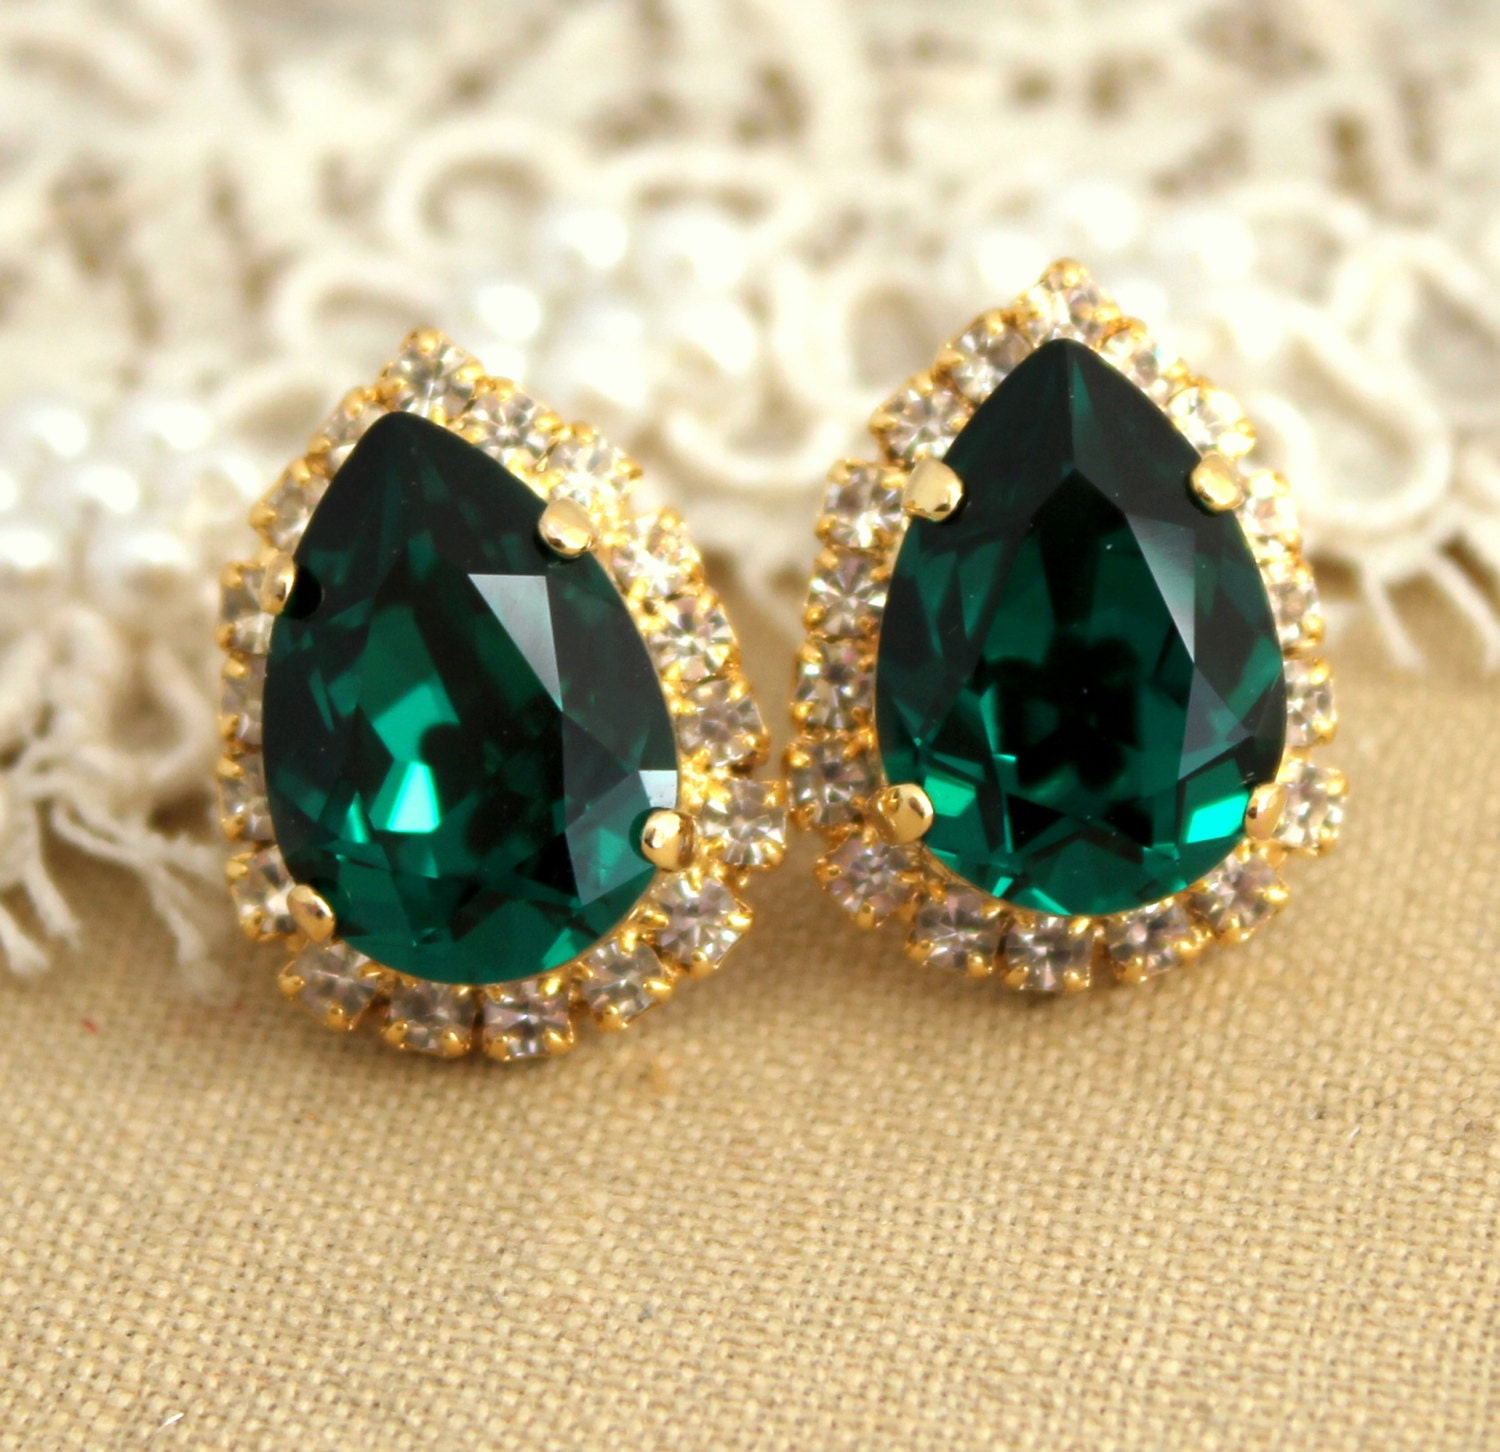 must collection have srgb clip black product makes stud elegance catherine emerald the tie jewelry a item earrings green omega ciro royal timeless